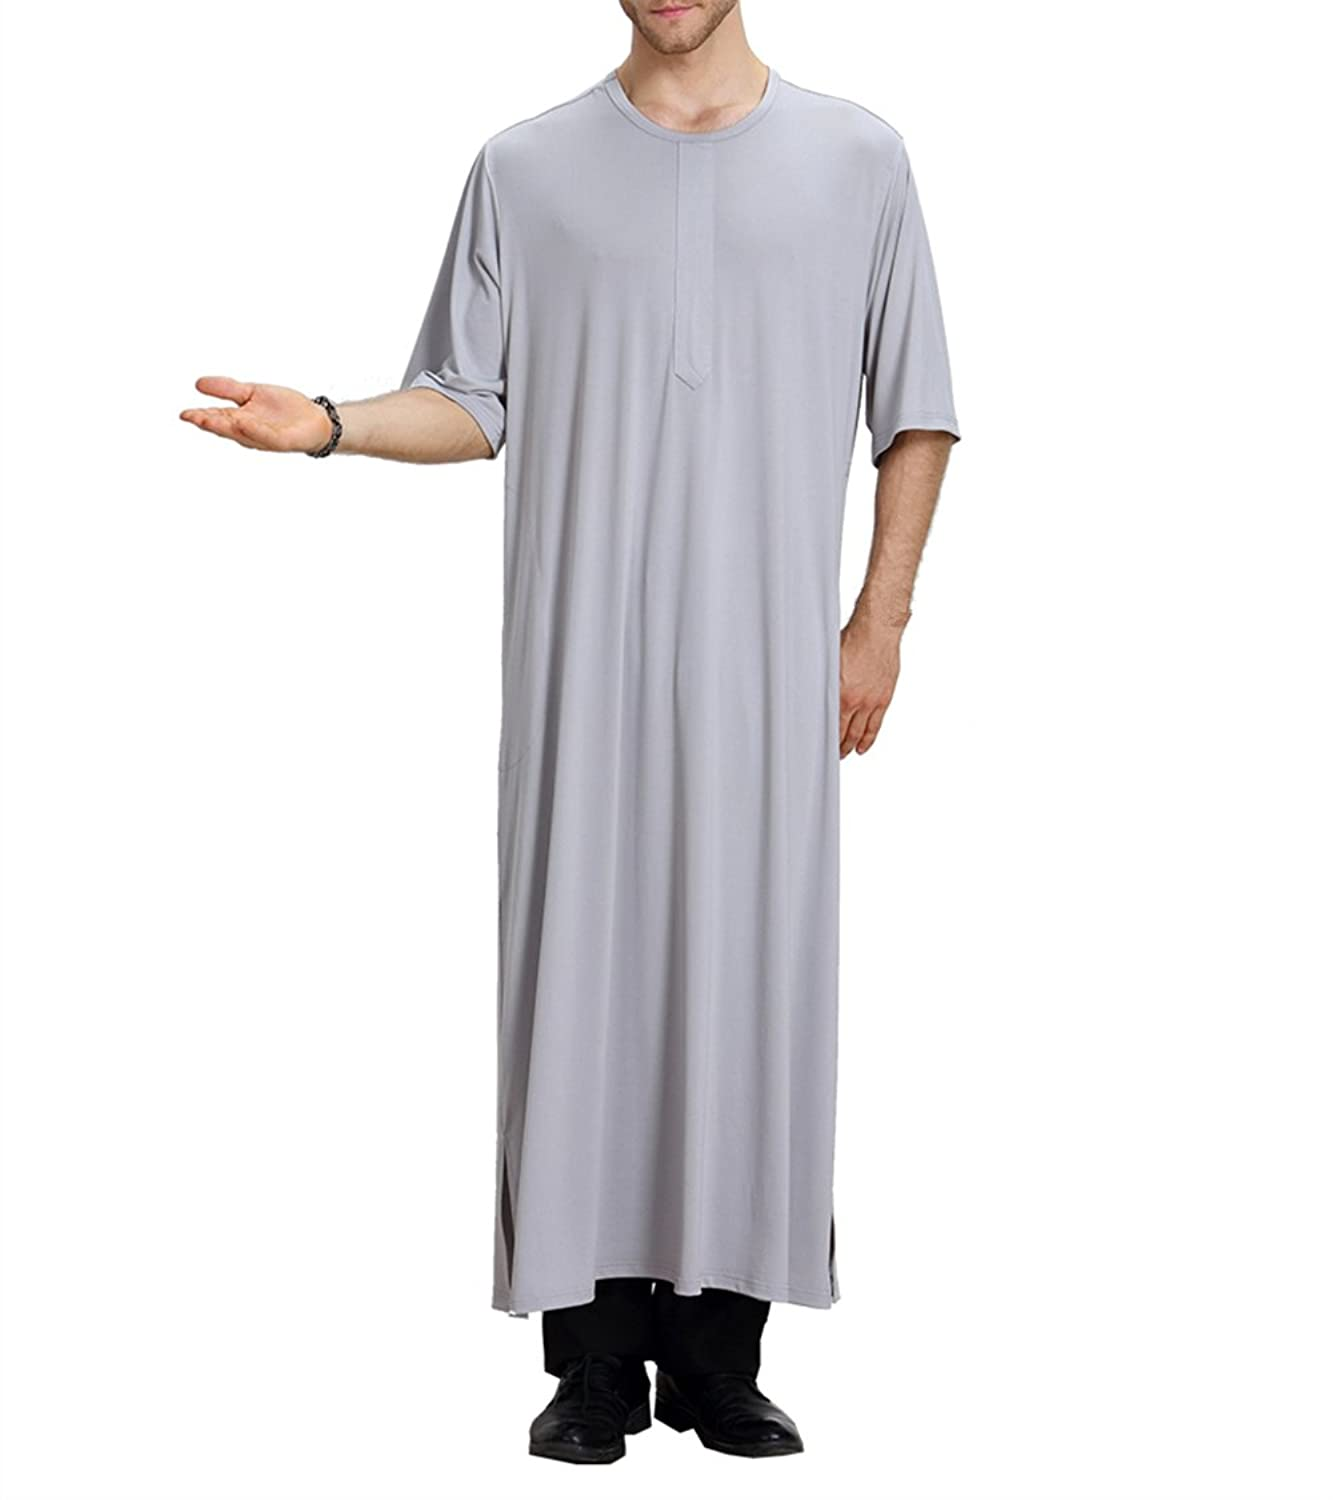 zhbotaolang Summer Men's Kaftan V-Neck Islamic Saudi Arabia Dress M-XL